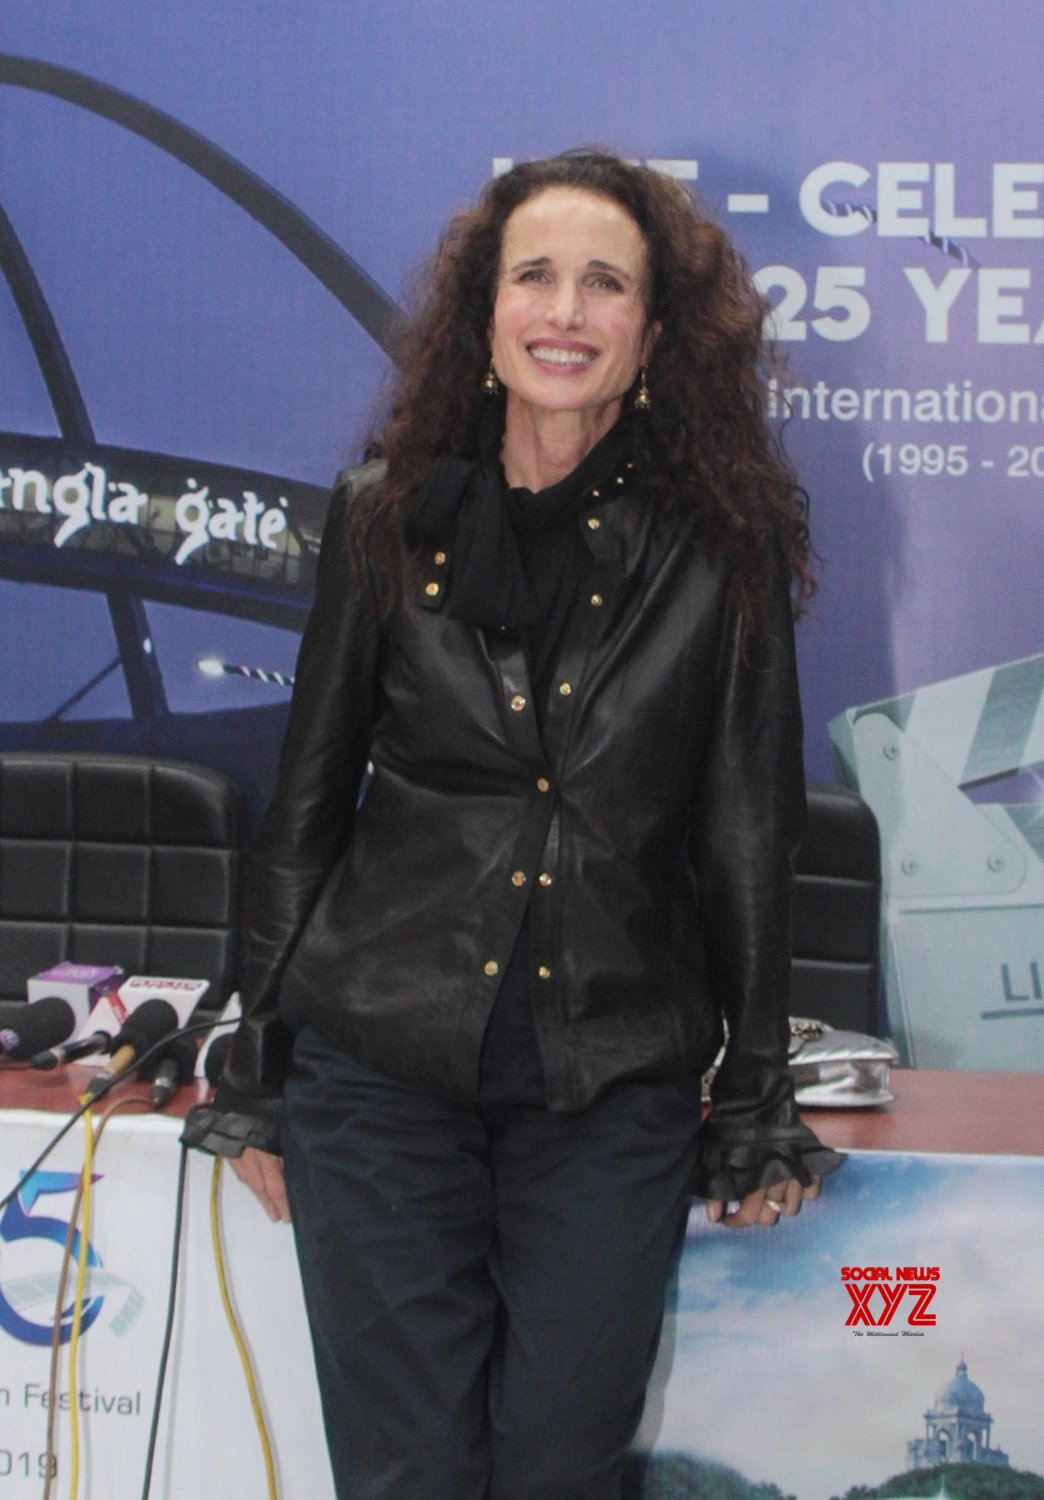 Kolkata: Andie MacDowell's press conference at 25th KIFF #Gallery